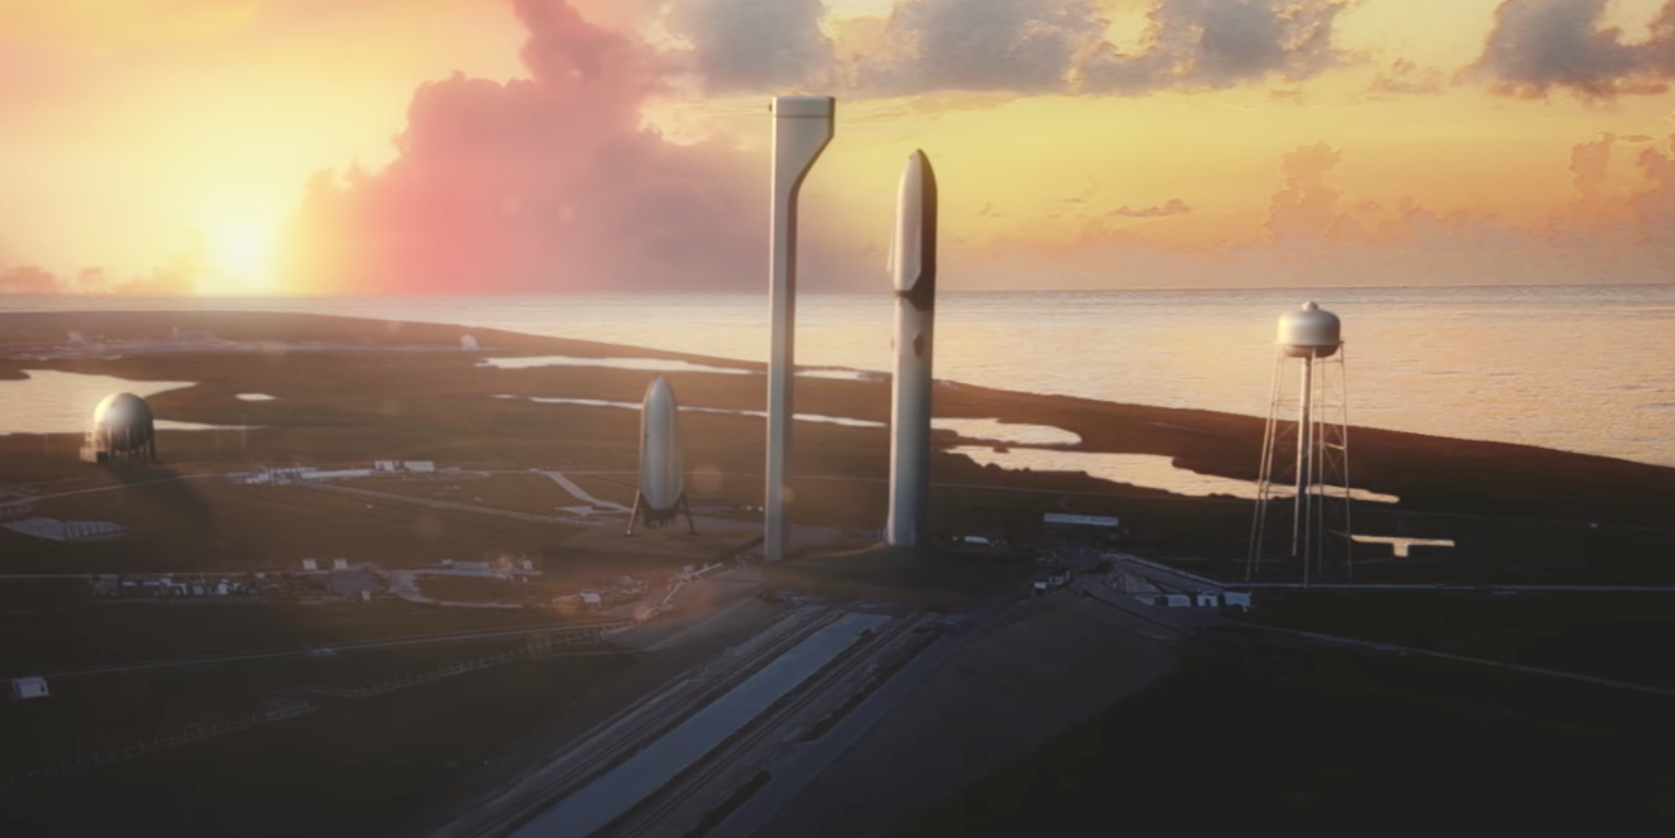 The Chances of SpaceX Beating NASA to Mars Just Went Up